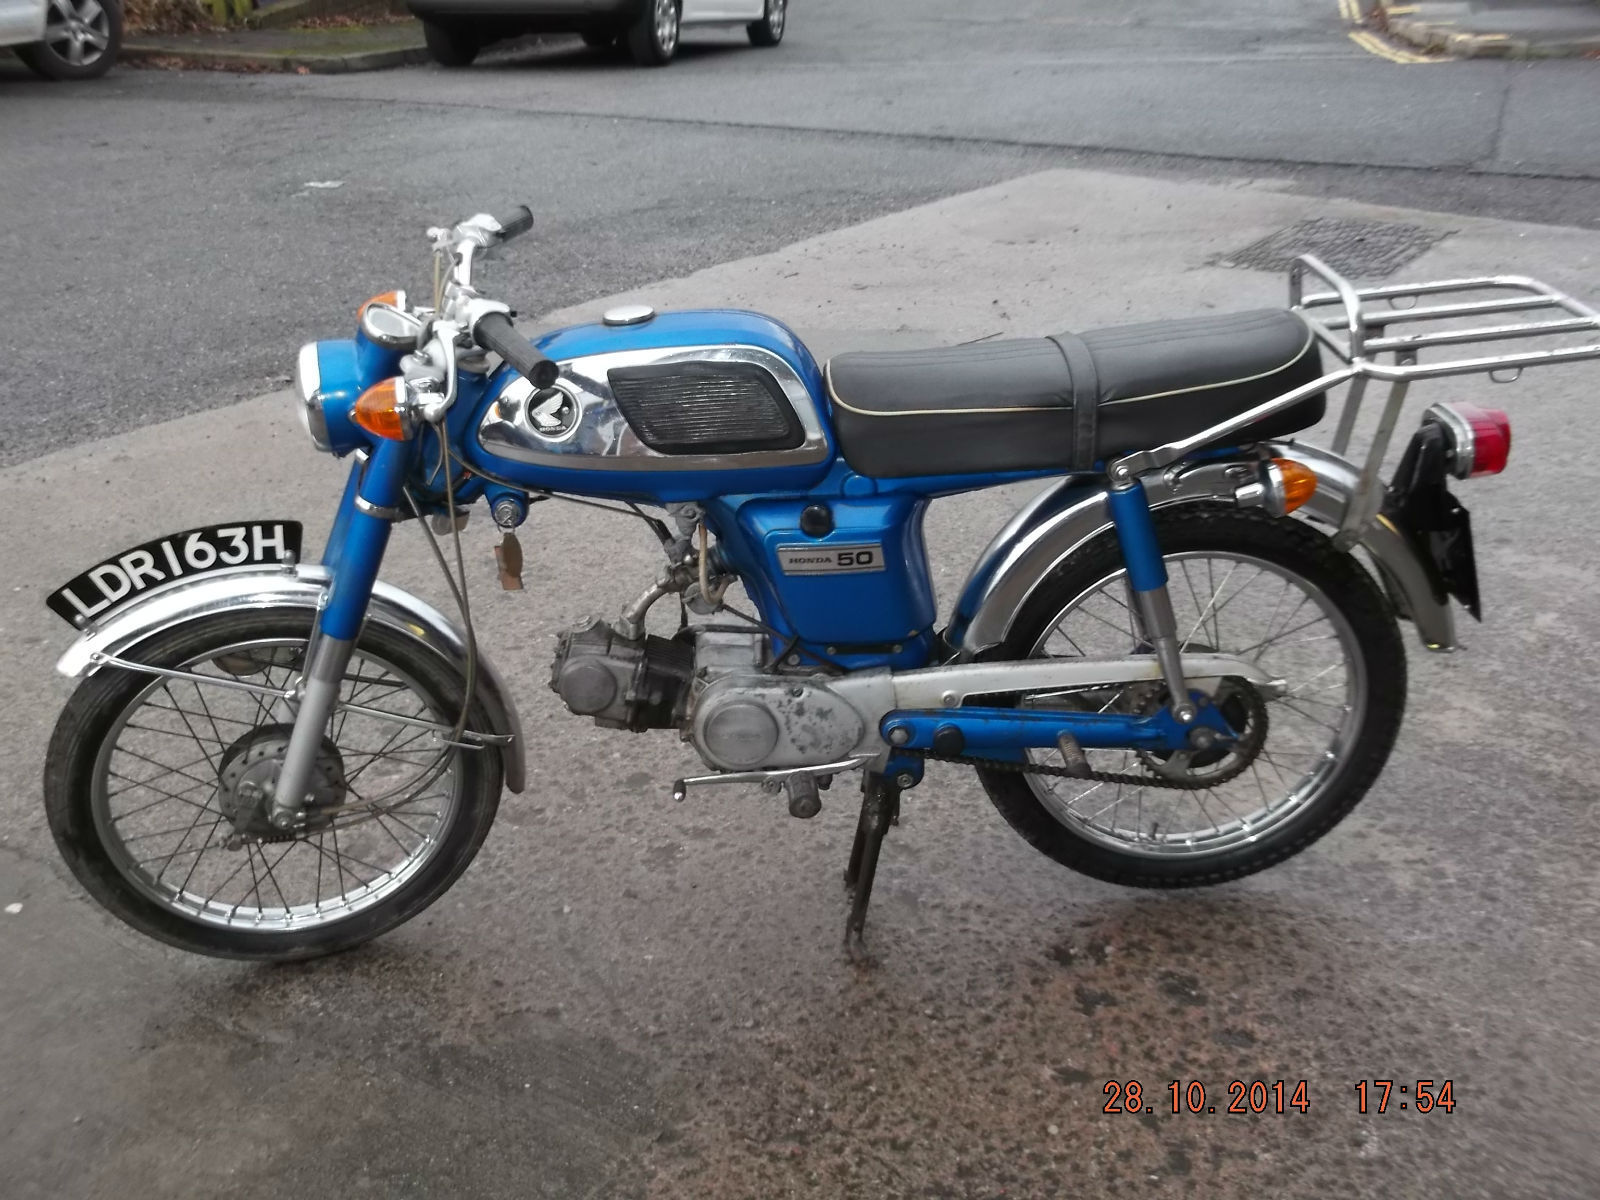 Honda Ss50 Manufactured In 1969 Clean Bike